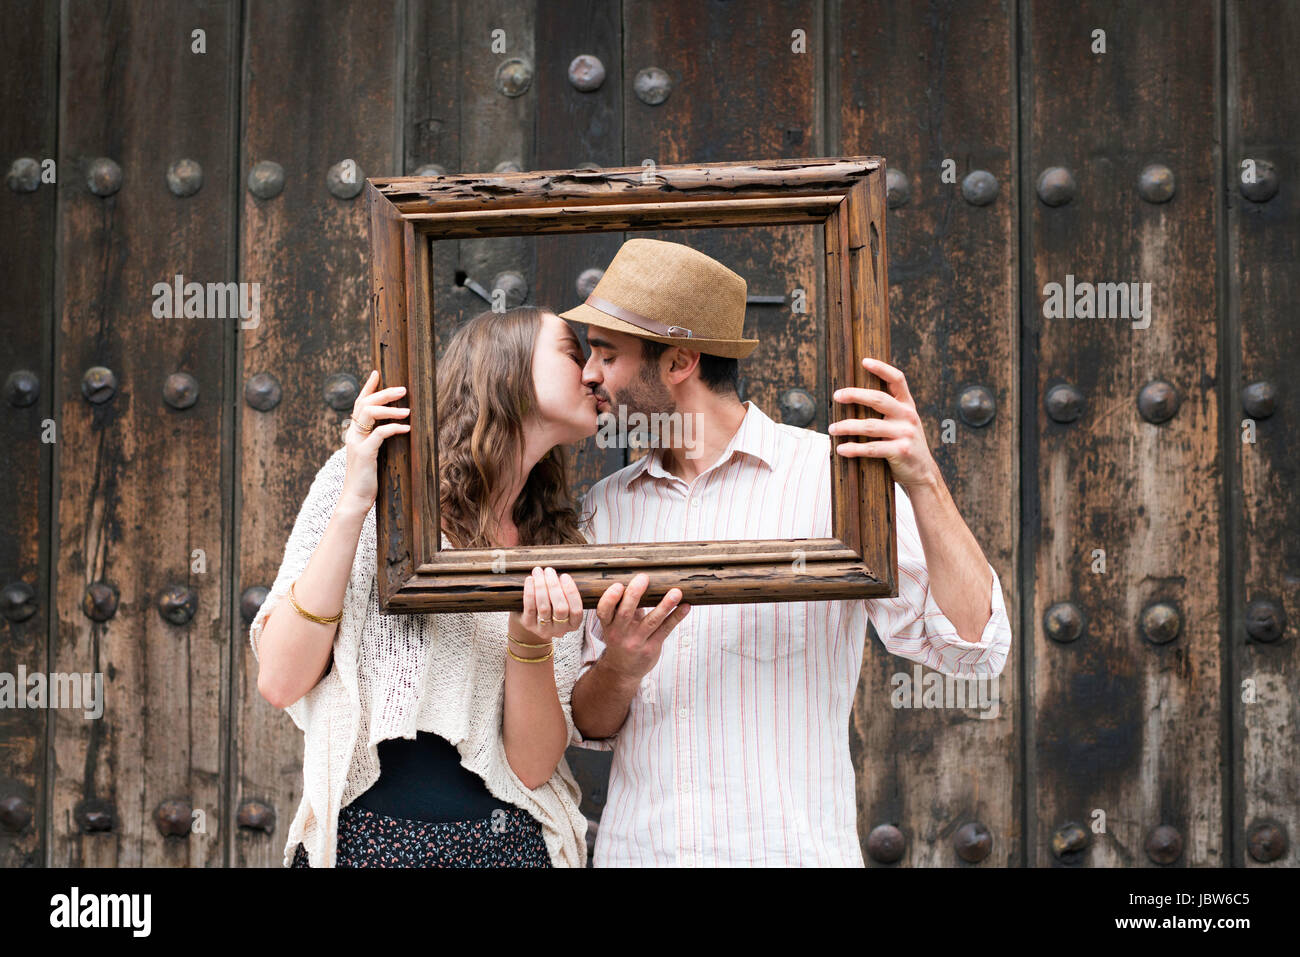 Portrait of couple, kissing, holding wooden frame in front of their faces, Mexico City, Mexico - Stock Image